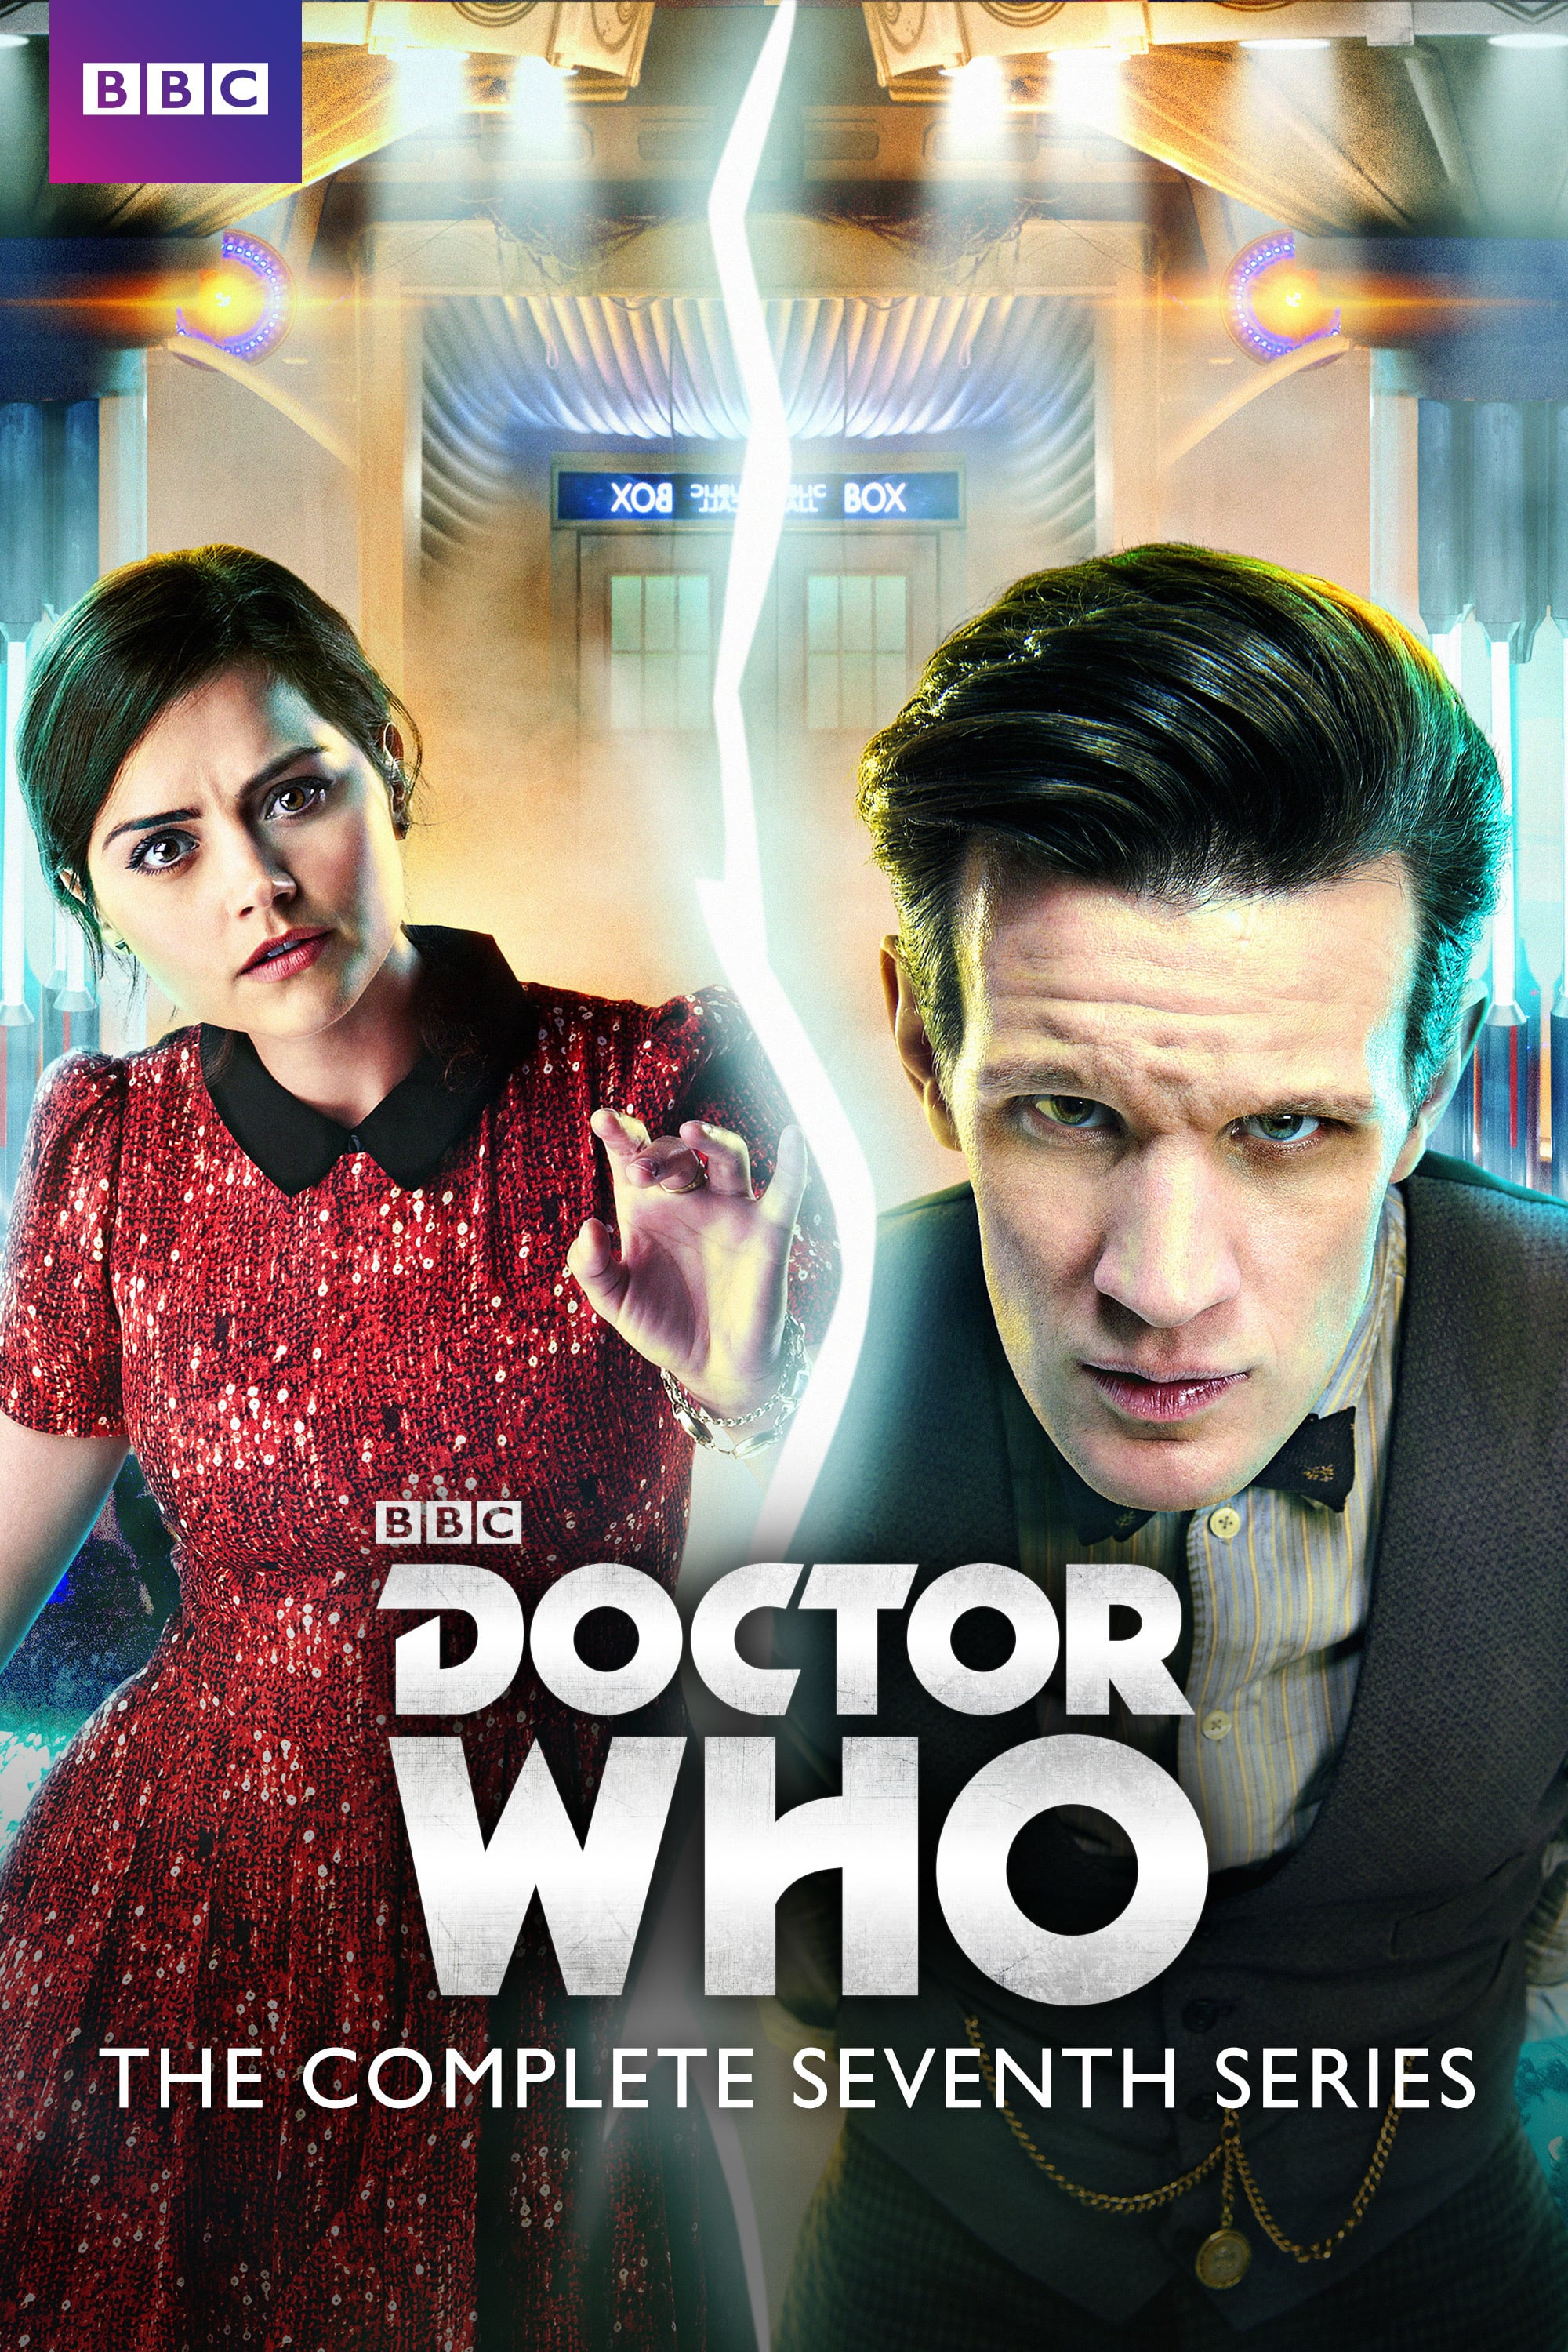 Doctor Who 2005